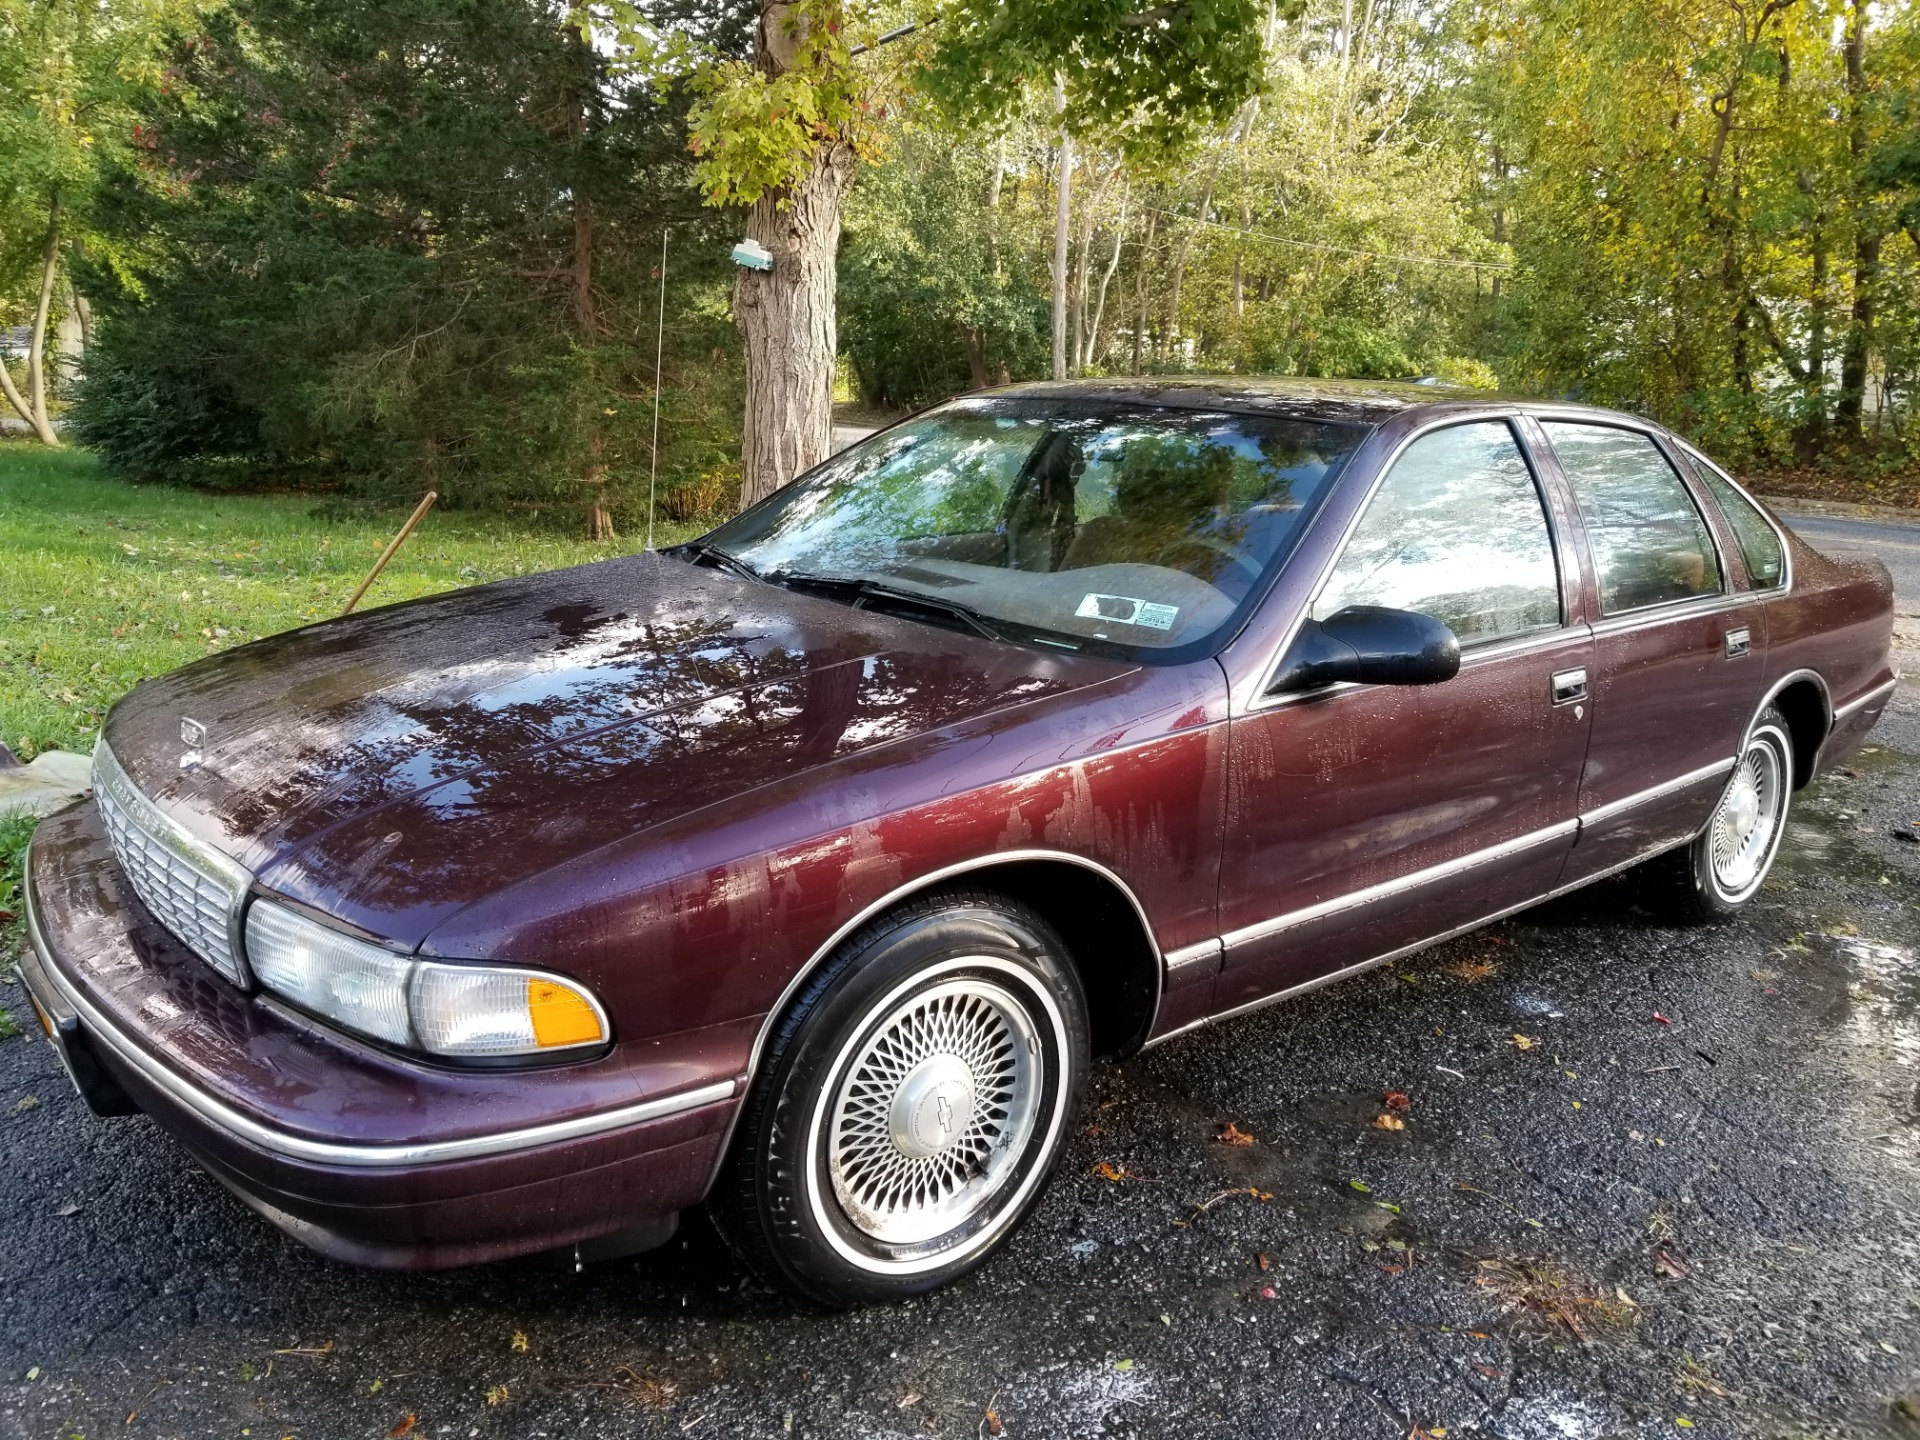 1995 Chevrolet Caprice Stock # CAPRICE111 for sale near New